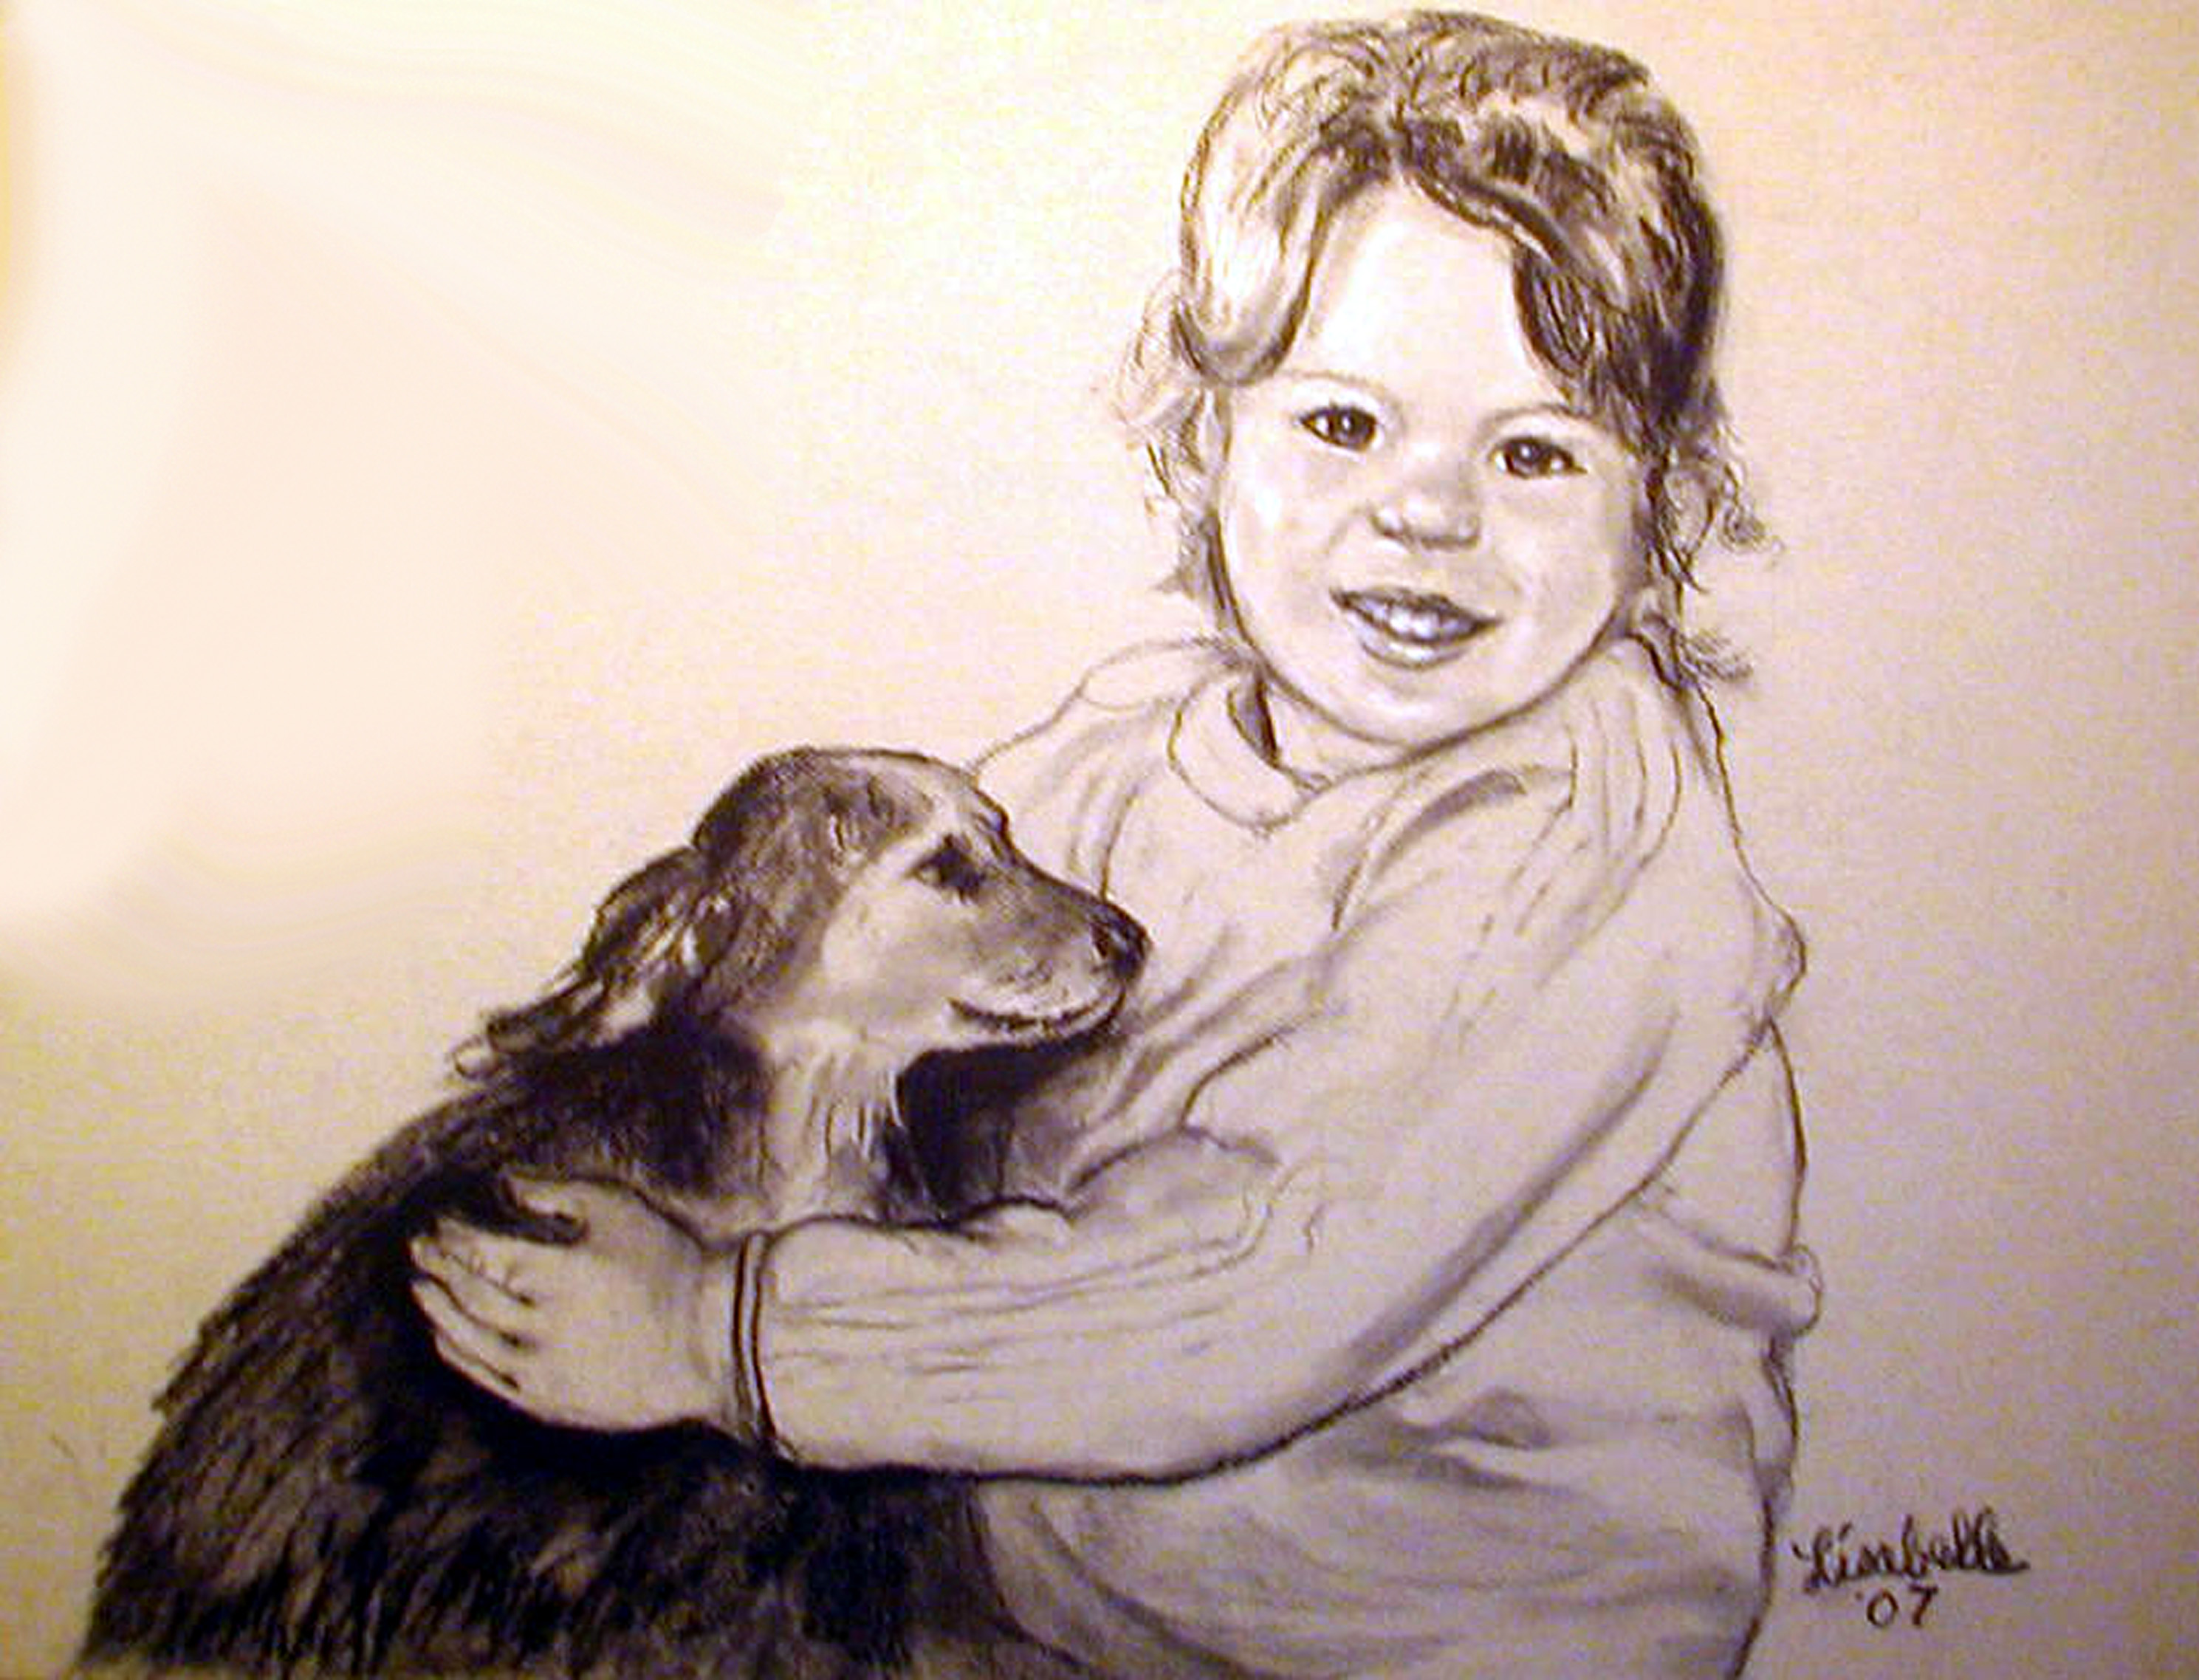 CAROLS GRANDAUGHTER 2007 Charcoal Portraits by Lisabelle, Art by Lisabelle, ArtbyLisabelle, Pet Portraits by Lisabelle, Artwanted.com Prints of your favorite portraits by Lisabelle